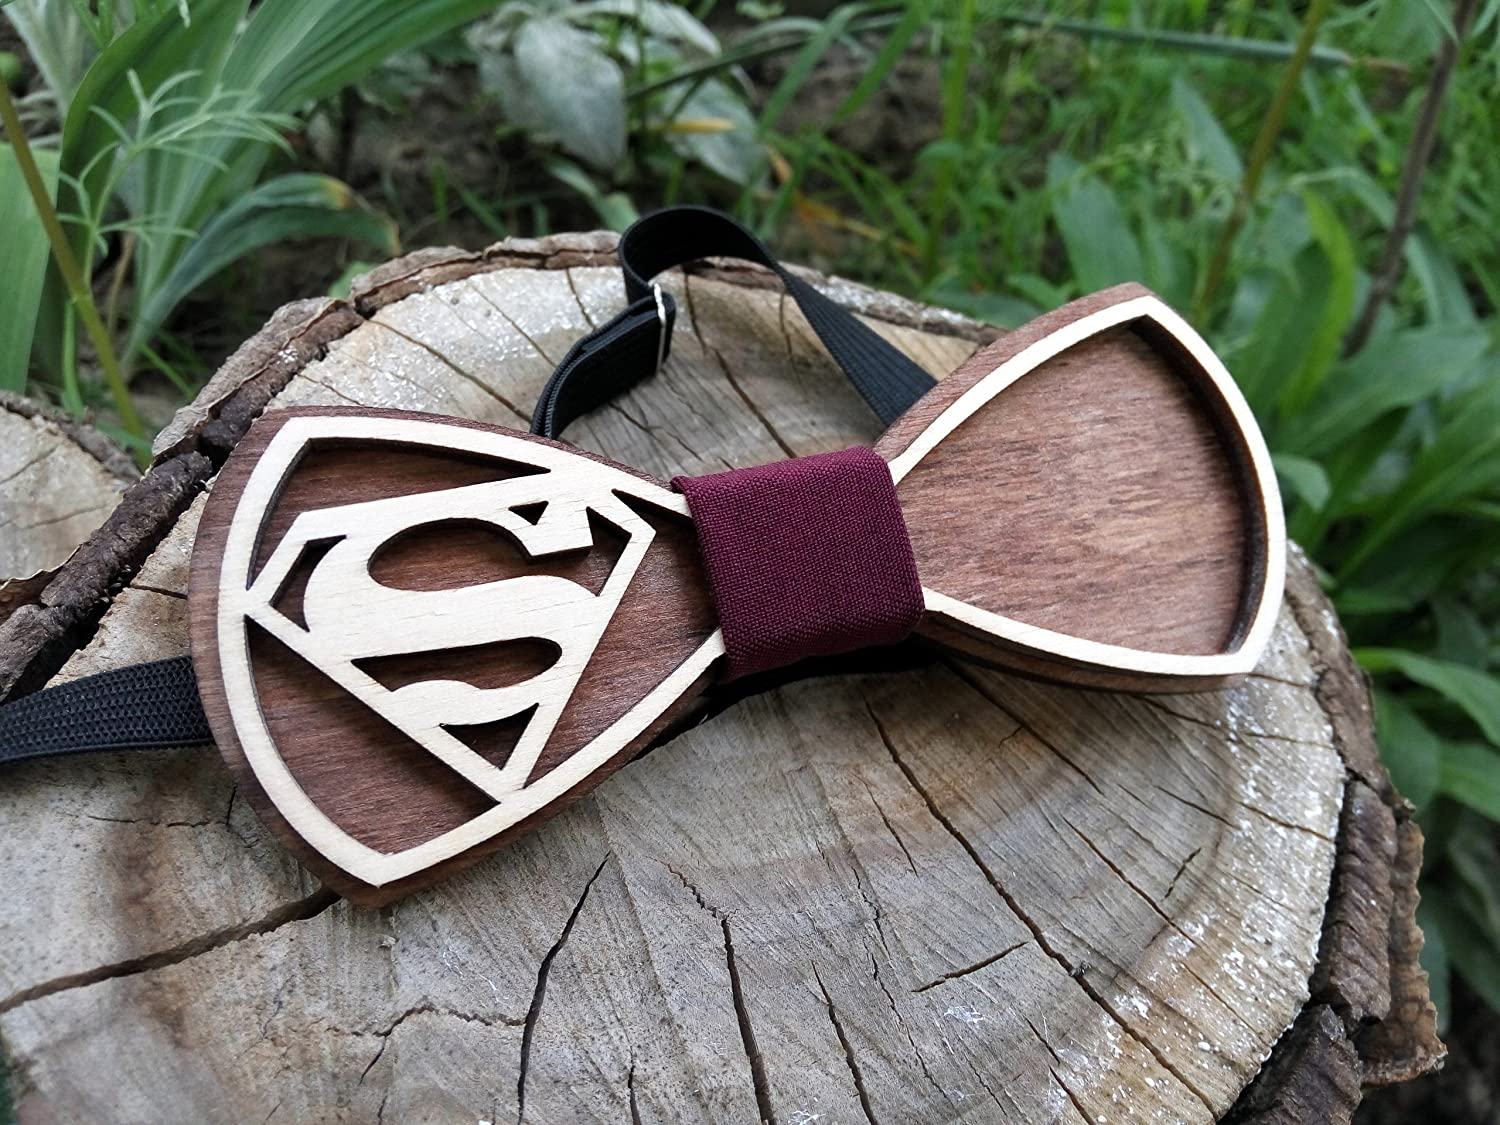 Superman Wooden Bow Tie / Wood Bow Tie / Super Hero Boys Bowtie / Wood Bowtie / Wooden Bowtie / Mens Bow Tie. 100% Hand Made - Mens Gift